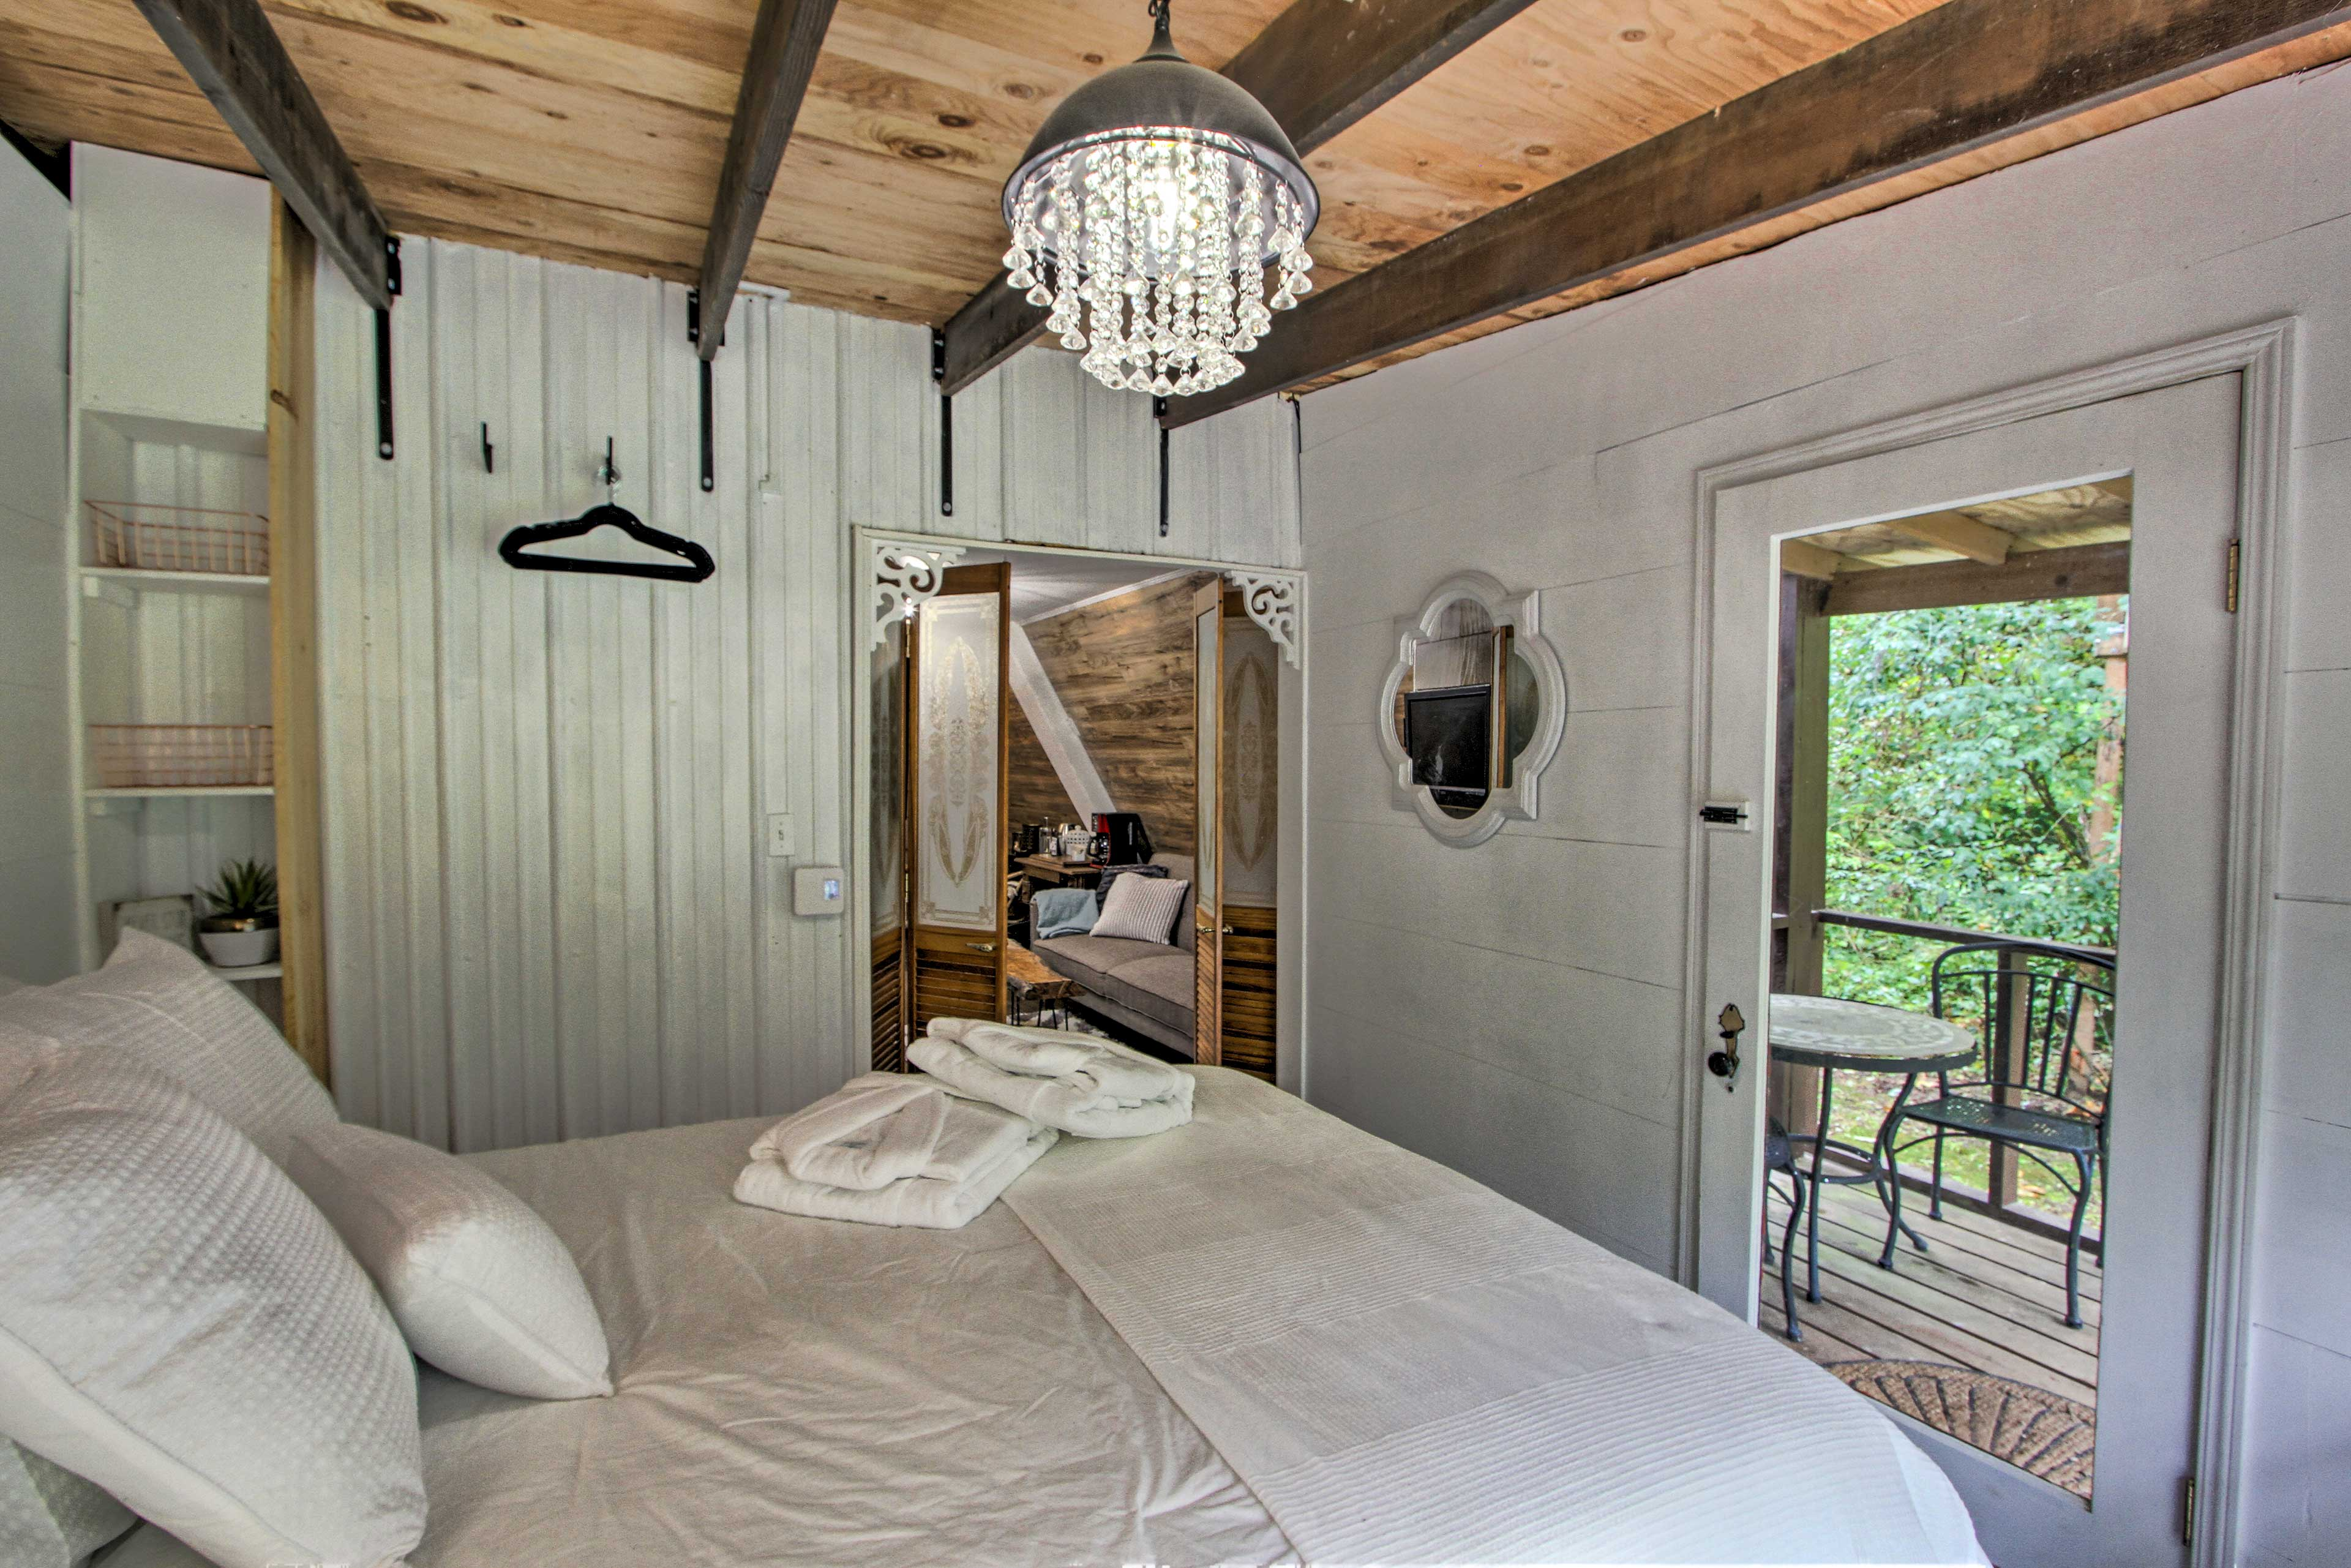 The other 2 travelers will love retreating to this peaceful bedroom.